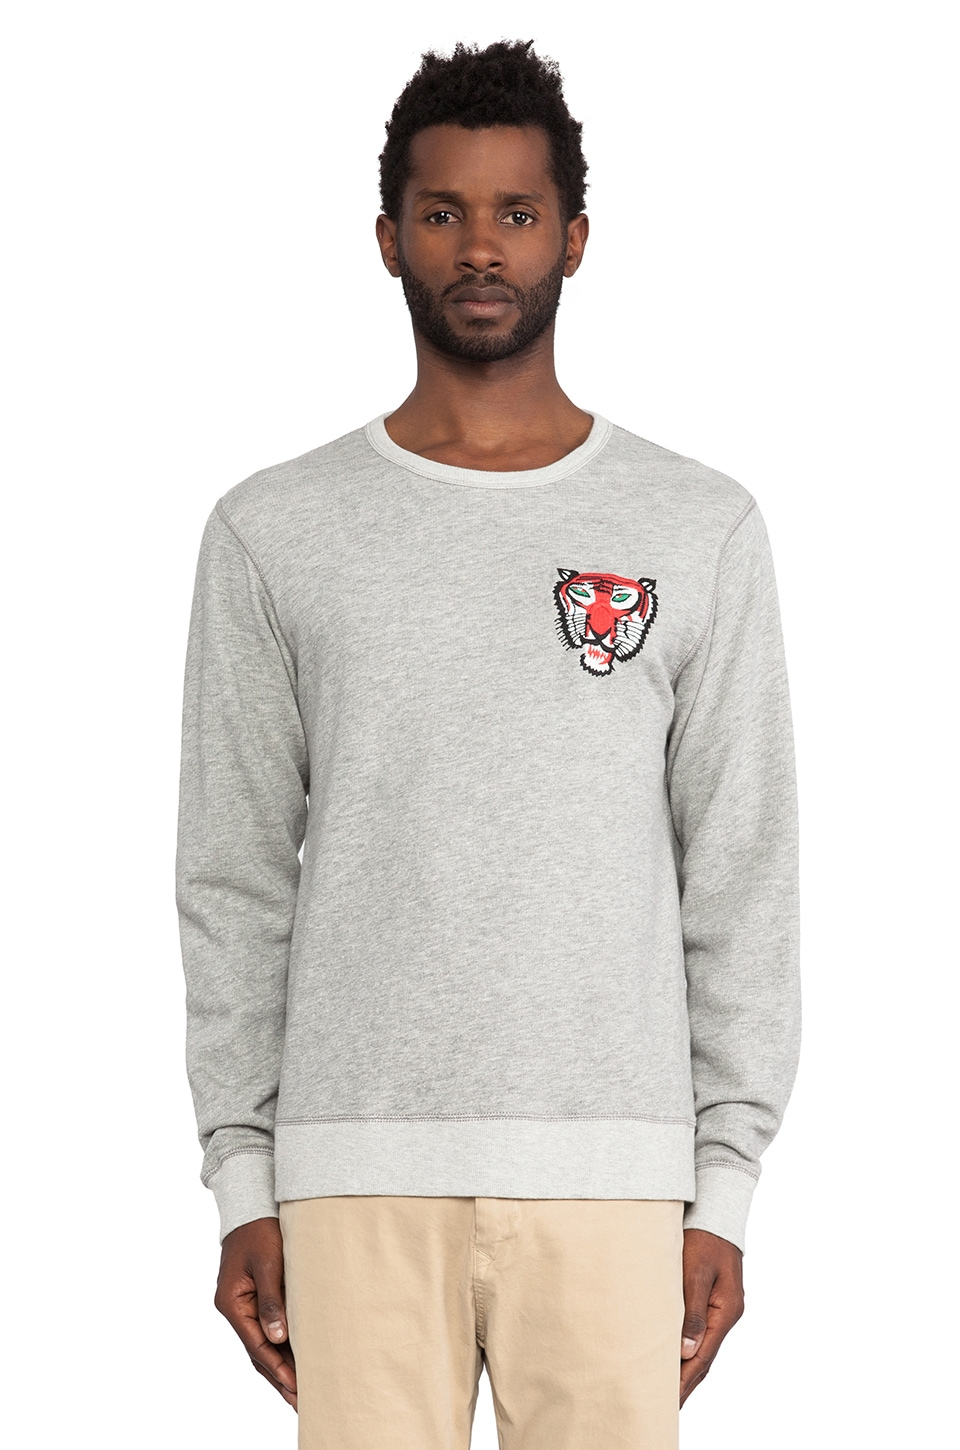 Burkman Bros. Tiger Crewneck Sweatshirt in Heather Grey